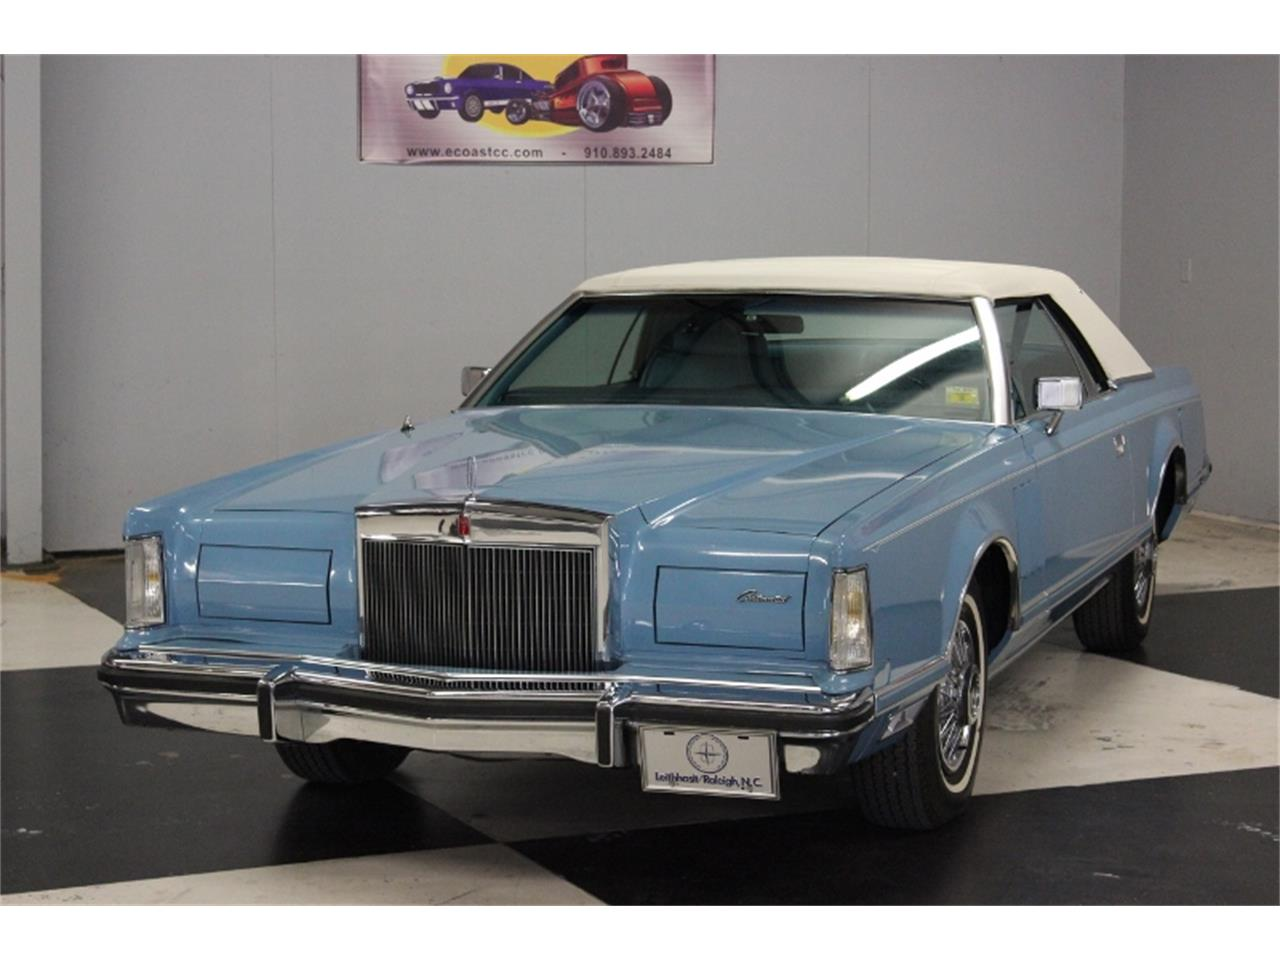 1978 Lincoln Continental Mark V (CC-993910) for sale in Lillington, North Carolina